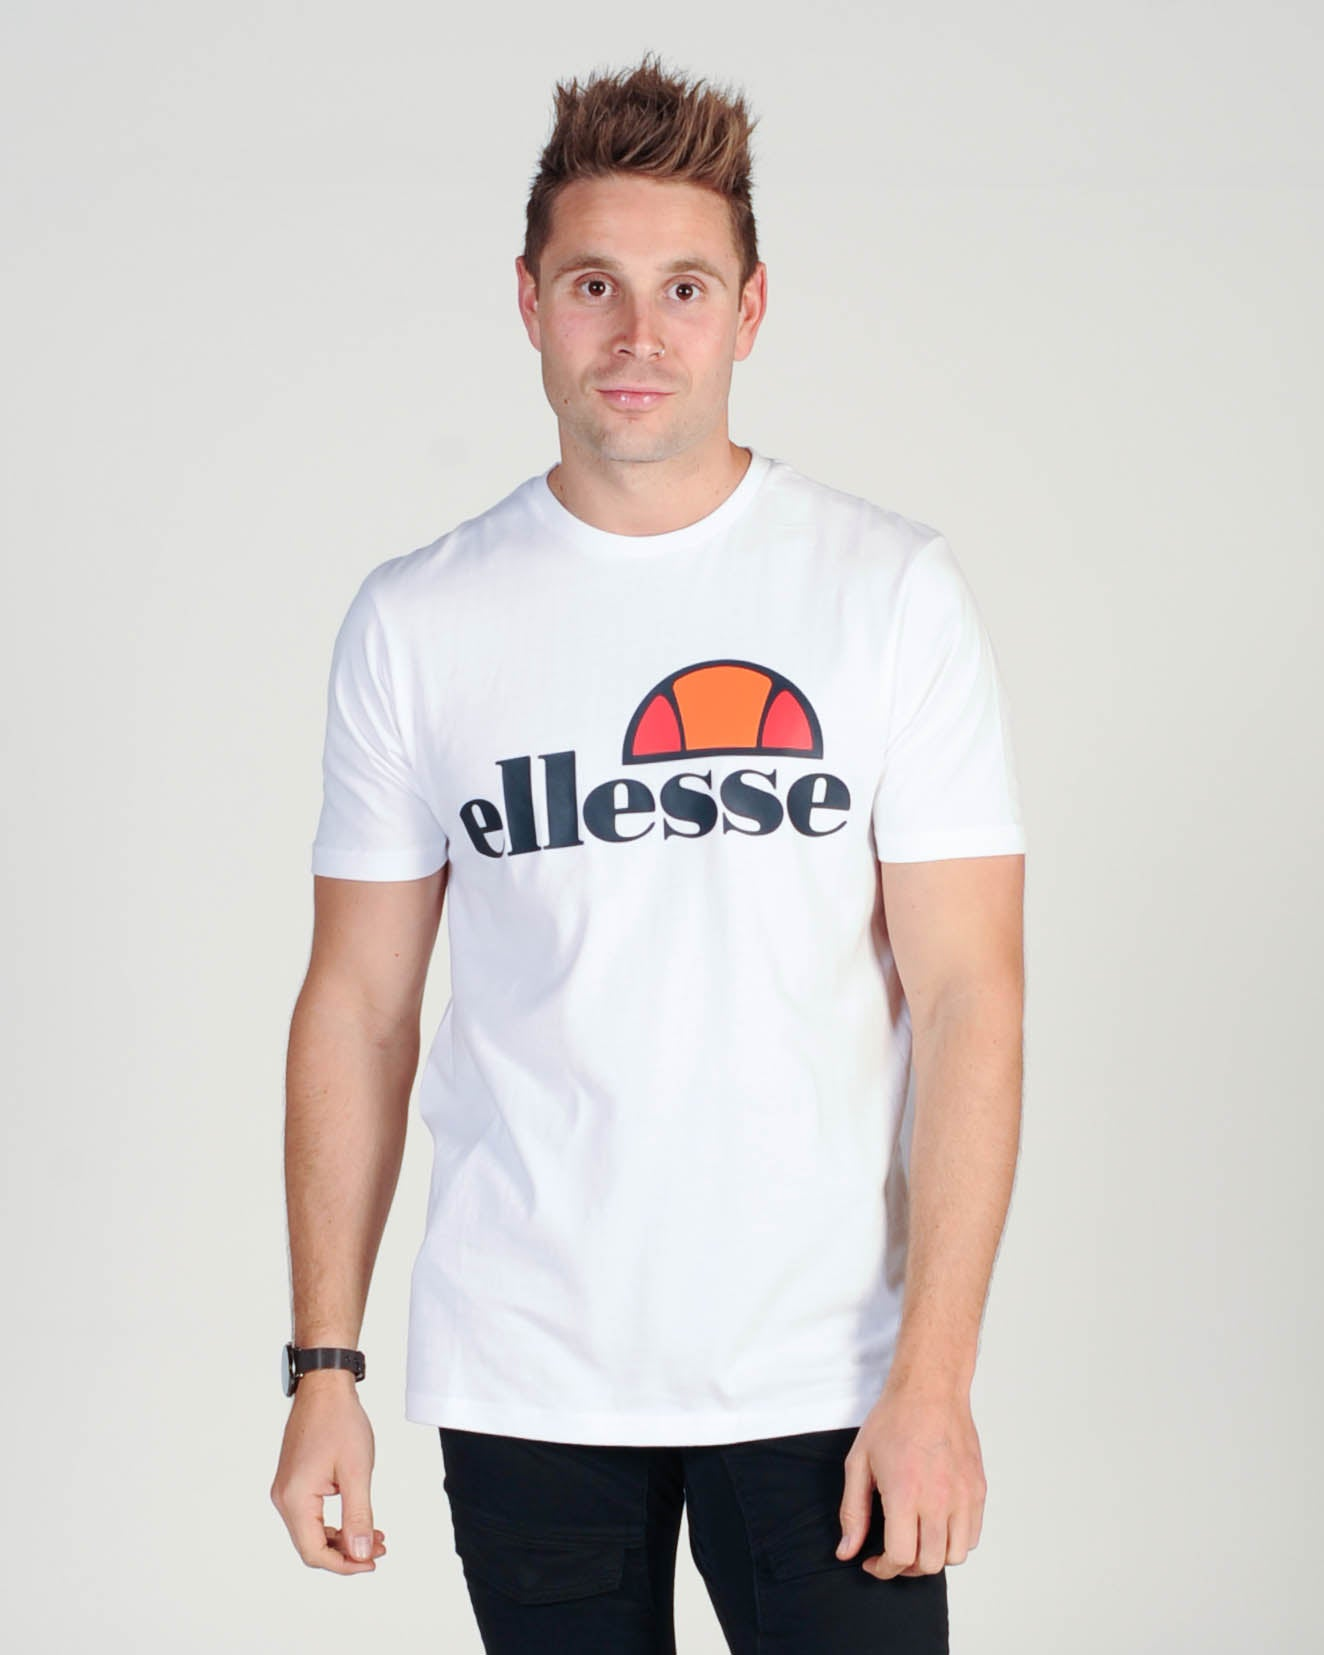 Ellesse Prado Tee - Optic White